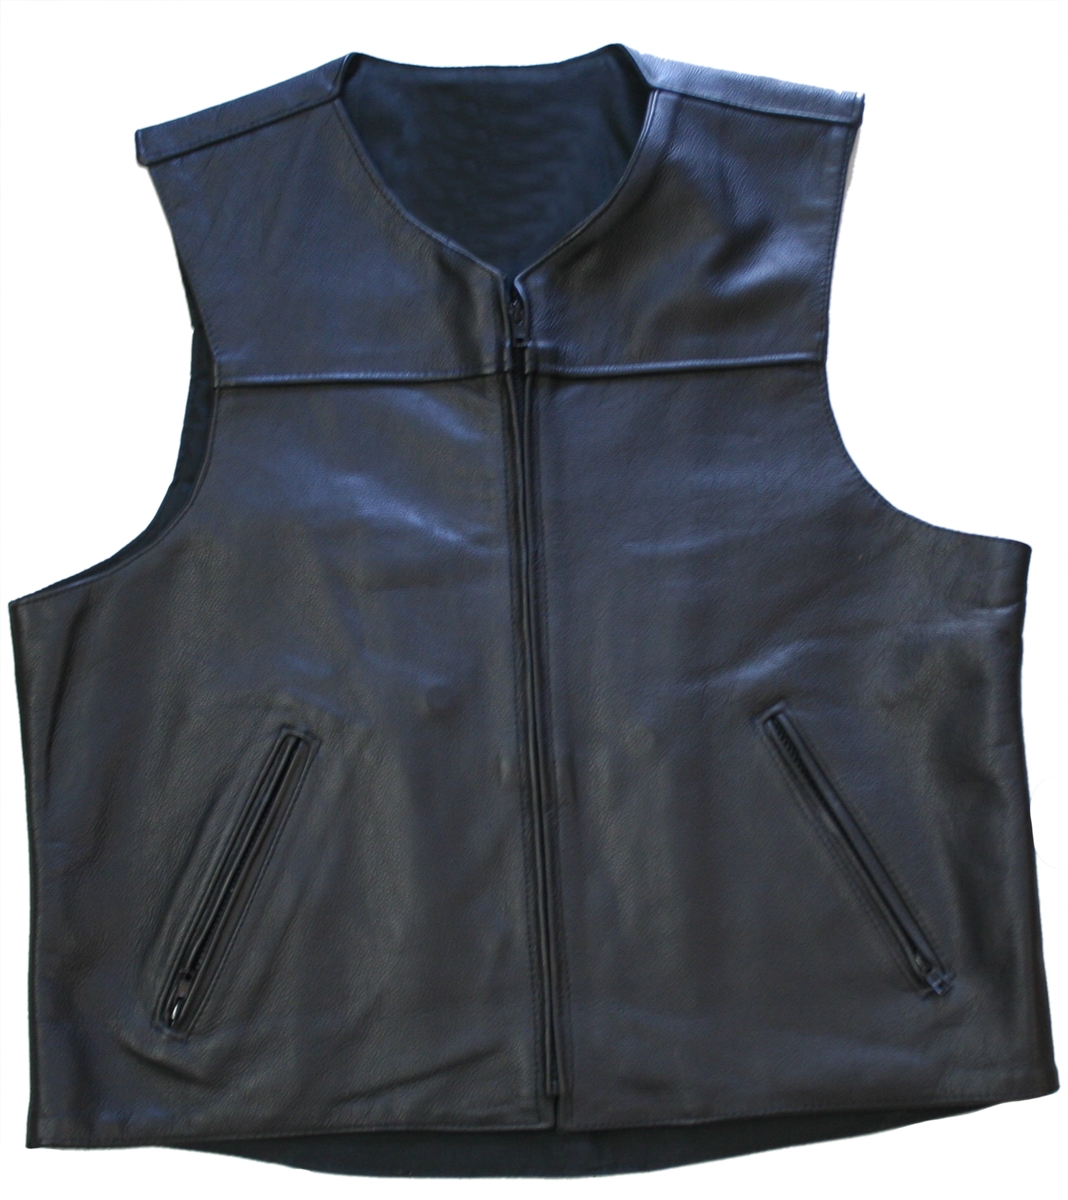 Zippered Lightweight Leather Motorcycle Vest, Comfort, quality and style that molds to you body, completely different.